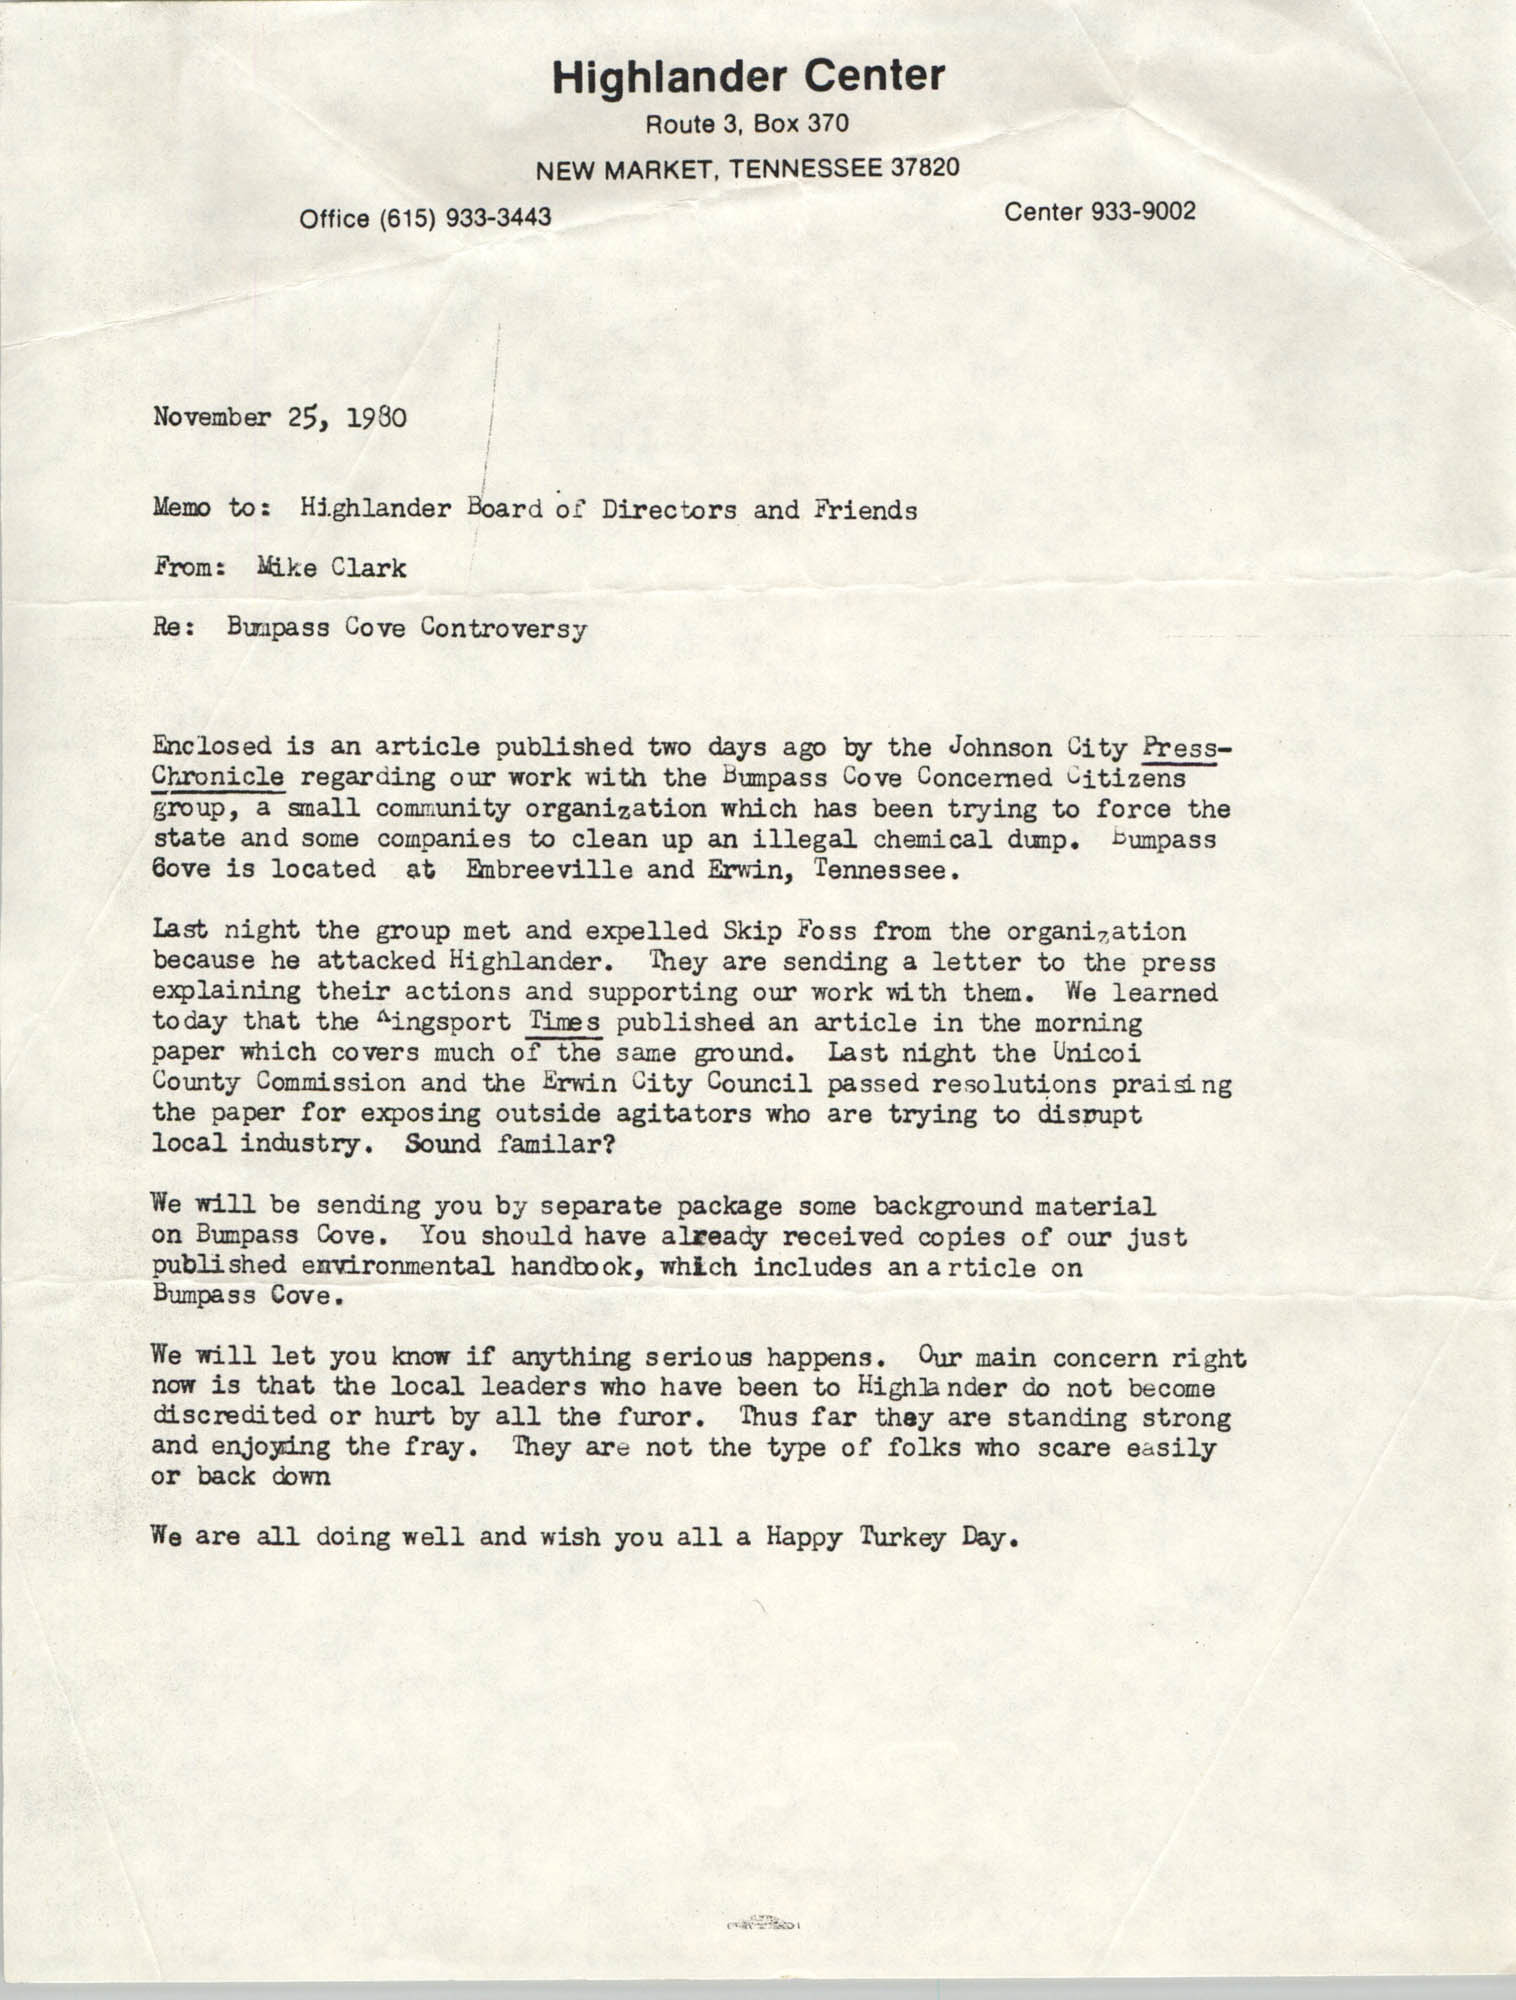 Memorandum from Mike Clark to Highlander Board of Directors and Friends, November 25, 1980